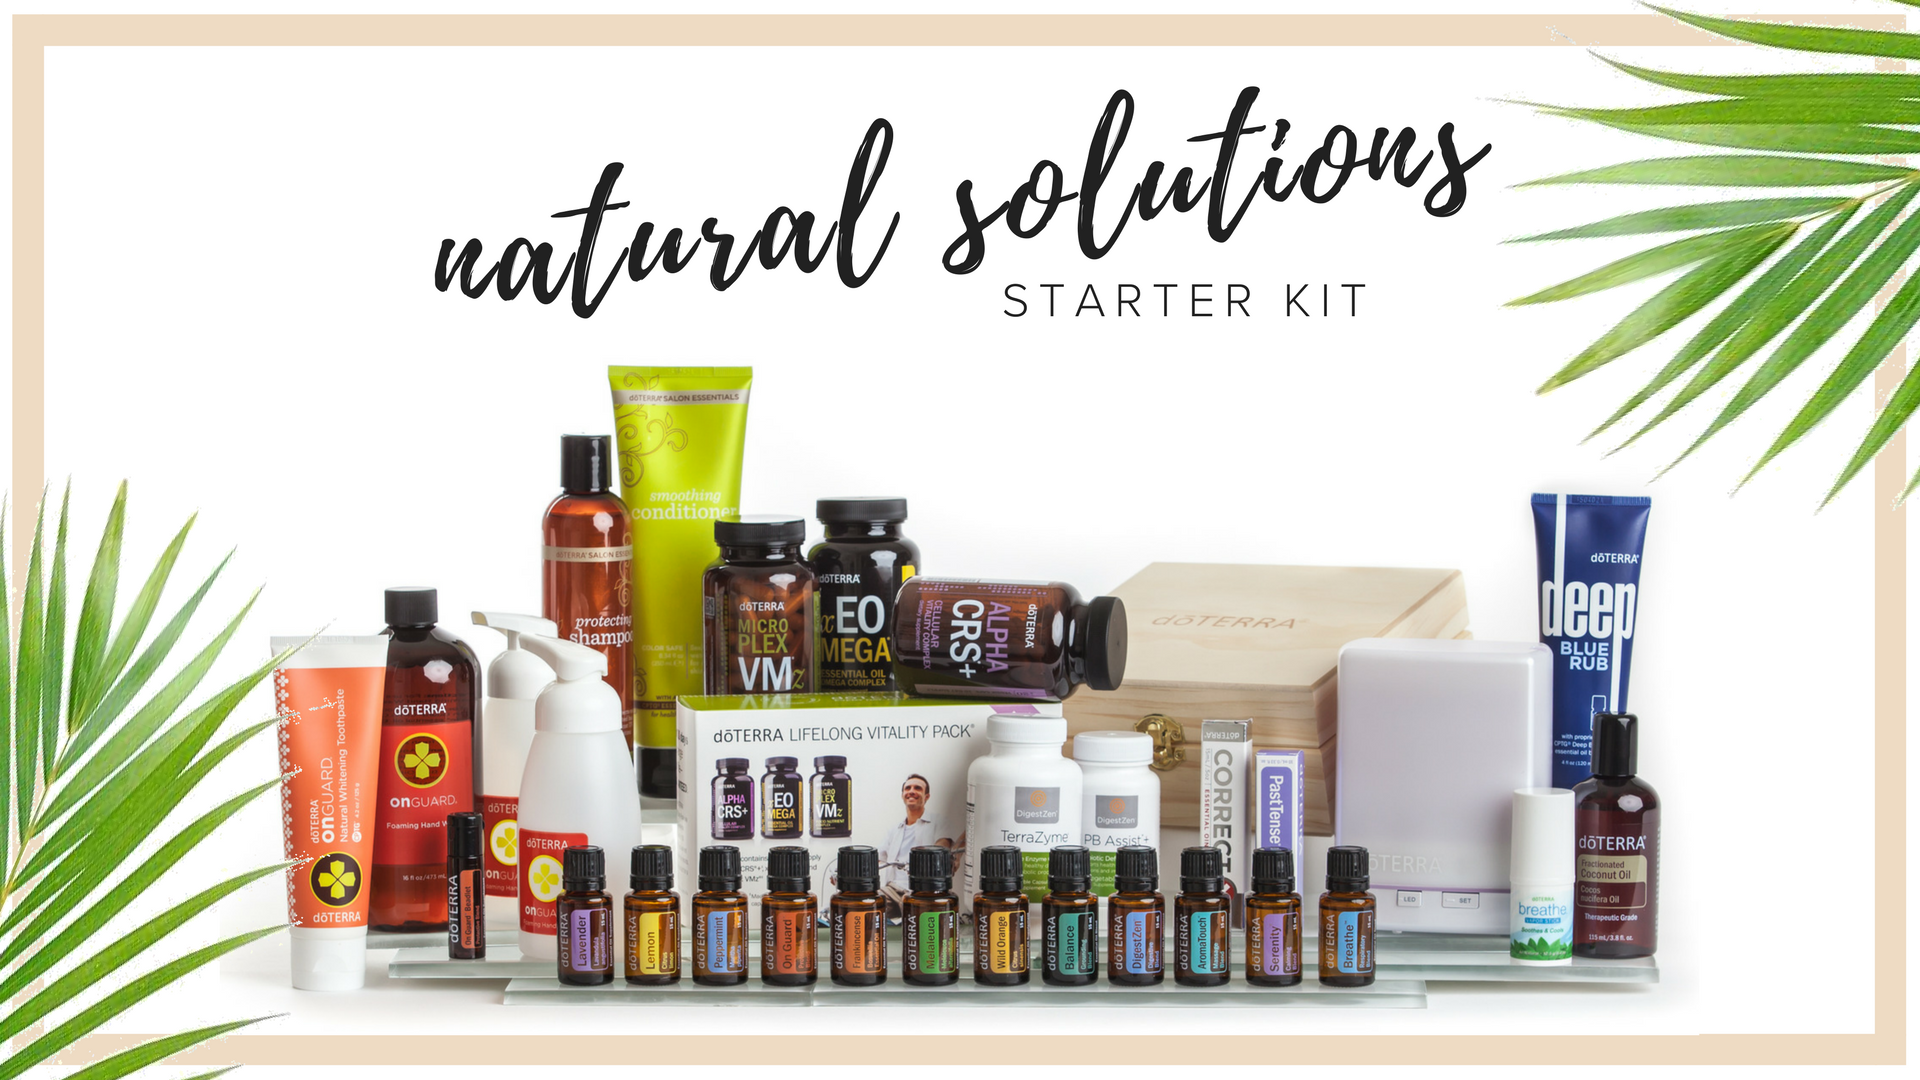 NATURAL SOLUTIONS KIT   This is by far my most popular kit, and the one i would have started with had it been available! This kit was put together specifically to help families who are ready to make the transition to a natural lifestyle and are ready to start uleveling  lots of different areas in their life. For example, you'll receive a lot of the mood oils, the foundational oils for immune system support, past tense oil for relieving tension, the Clary Calm to support women and balancing their beautiful hormones, correctX, Lifelong Vitality Pack, an 8 hour diffuser, my fave OnGuard products like foaming hand wash and toothpaste, fractionated coconut oil for diluting for sensitive skin and children, TerraZyme and pb assist for gut health, our sulfate free shampoo and conditioner, everyone's fave deep blue rub, plus a beautiful wooden storage box for your oils.  Retail Cost $733. Wholesale Kit Price $500. $233 in Savings plus you're eligible to receive an additional $100 in product credits when you place your 100 pv Loyalty Rewards order the following month and you jump on the Fast track at 15% rebate on loyalty orders.  all new memberships include Exclusive aila love welcome gifts, a personal consultation with maile, ongoing education opportunities & a support community.